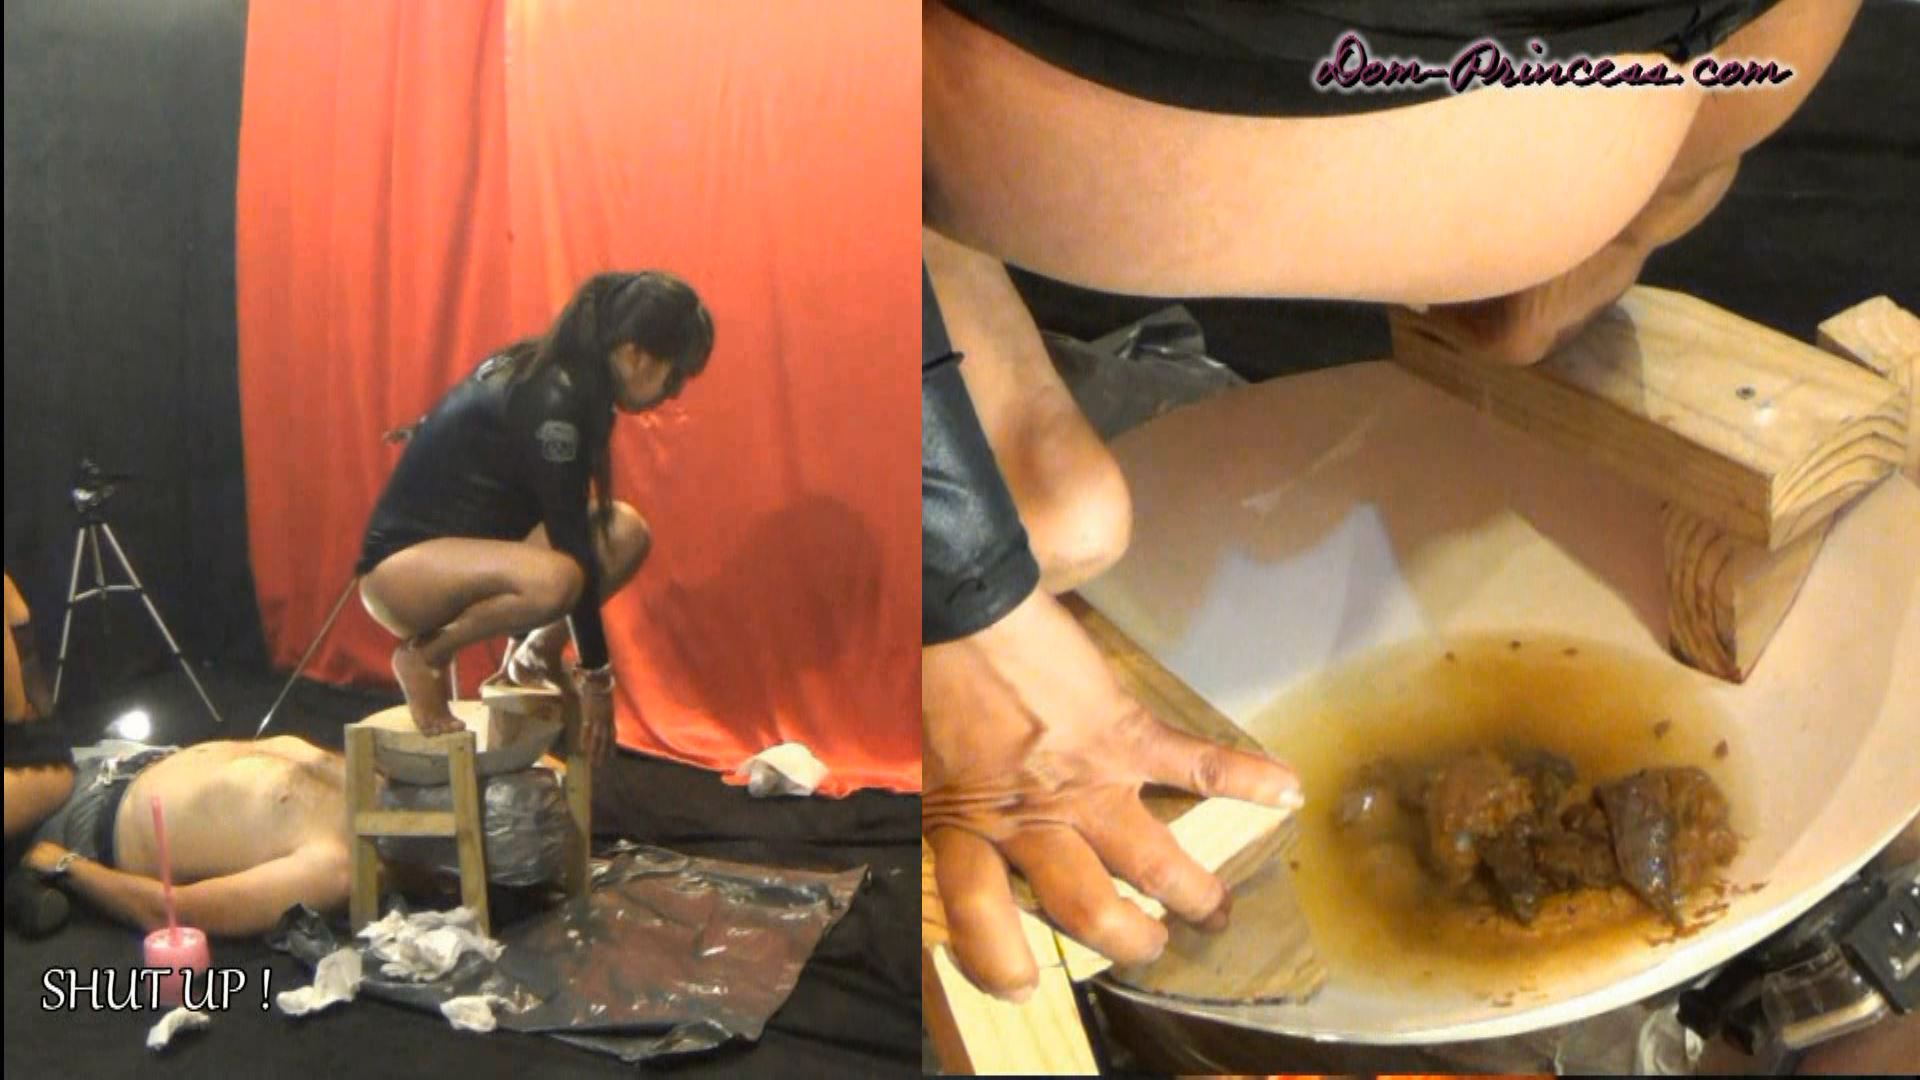 [SCAT-PRINCESS] Dark Toilet Ideas The next Level Part 04 Naomi [FULL HD][1080p][WMV]